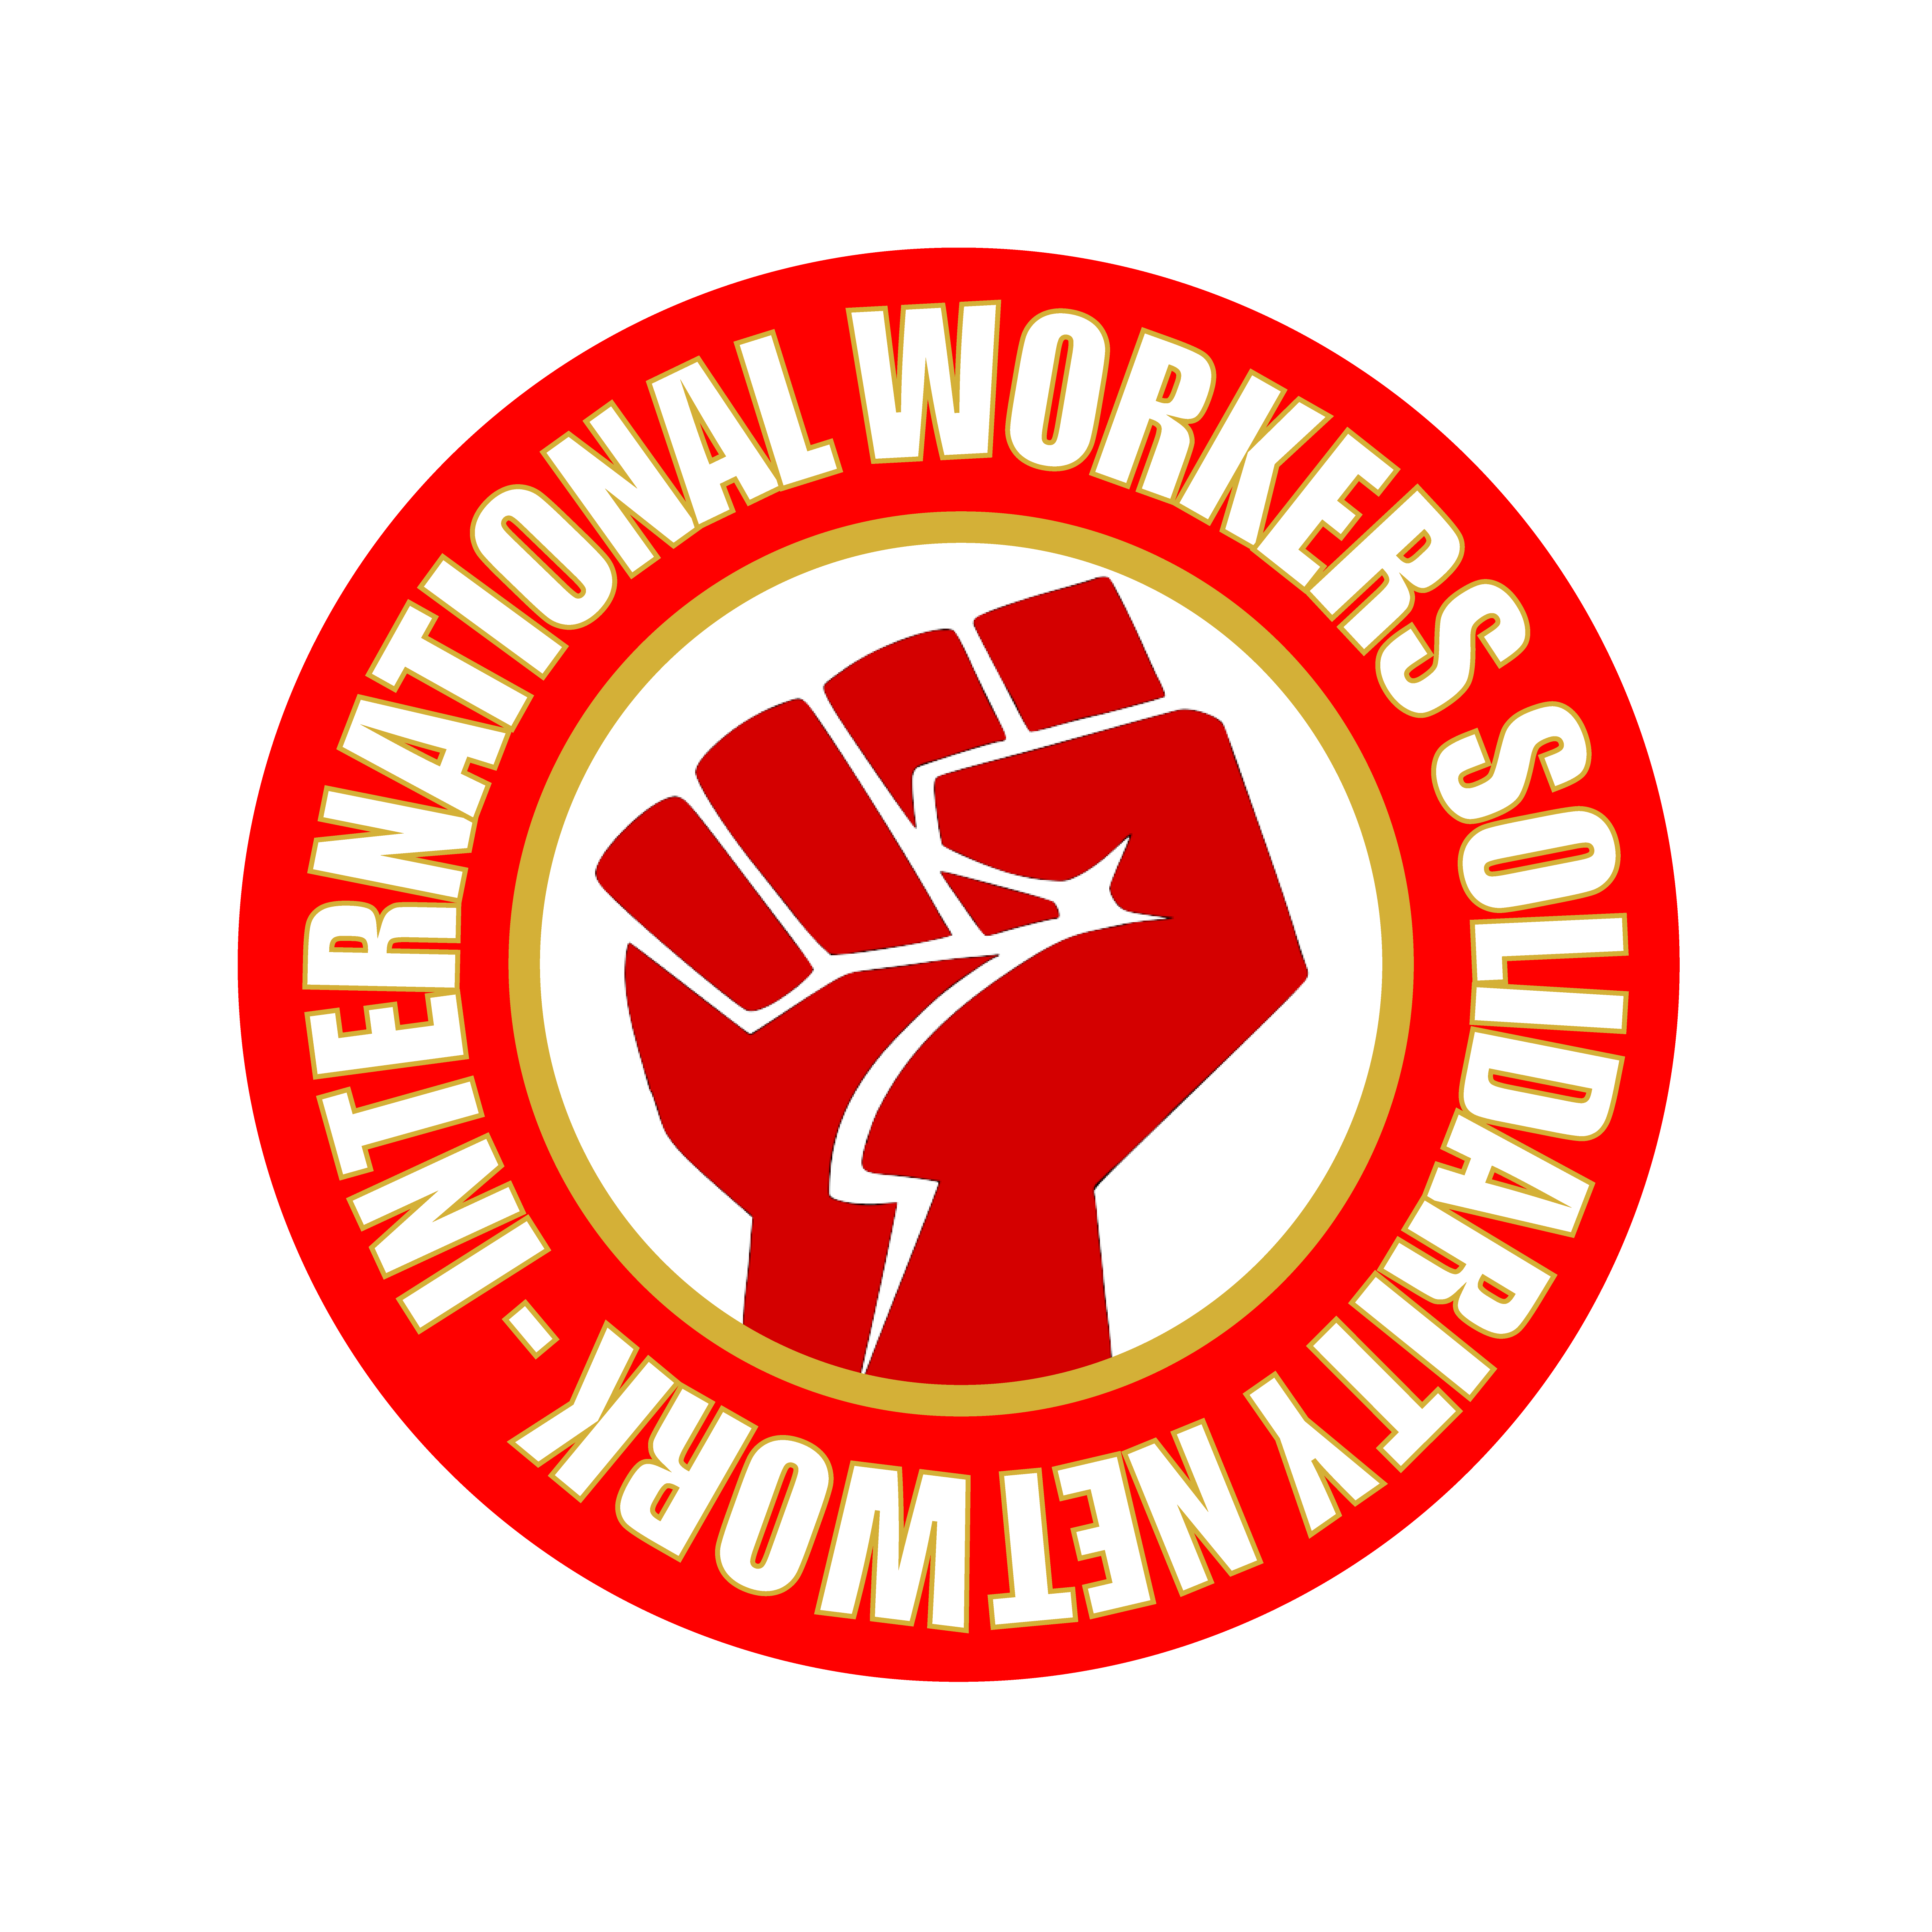 International Workers Solidarity Network